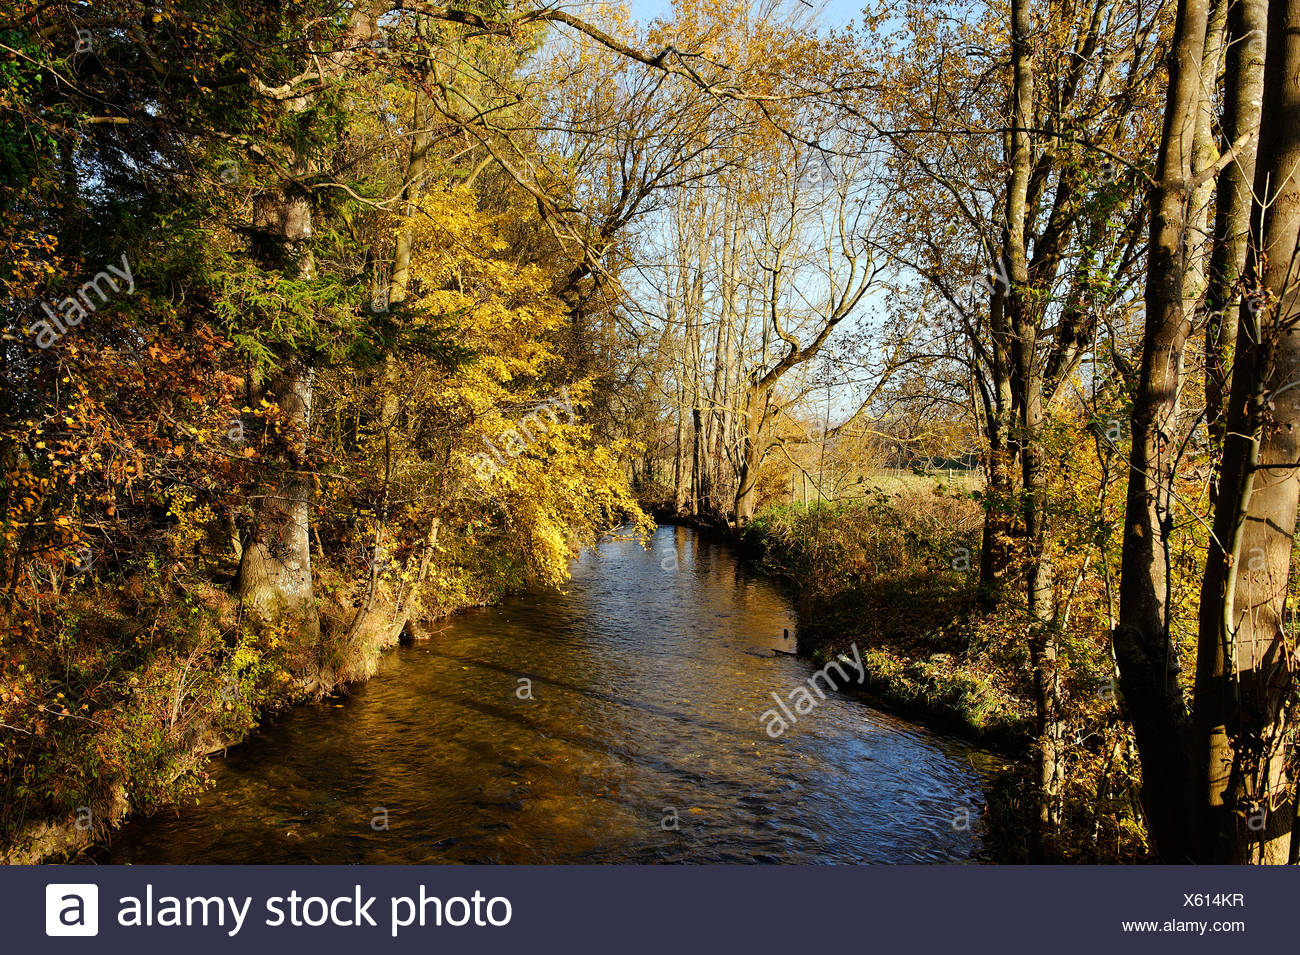 Tiefenbach stream, Polling, Upper Bavaria, Germany, Europe - Stock Image